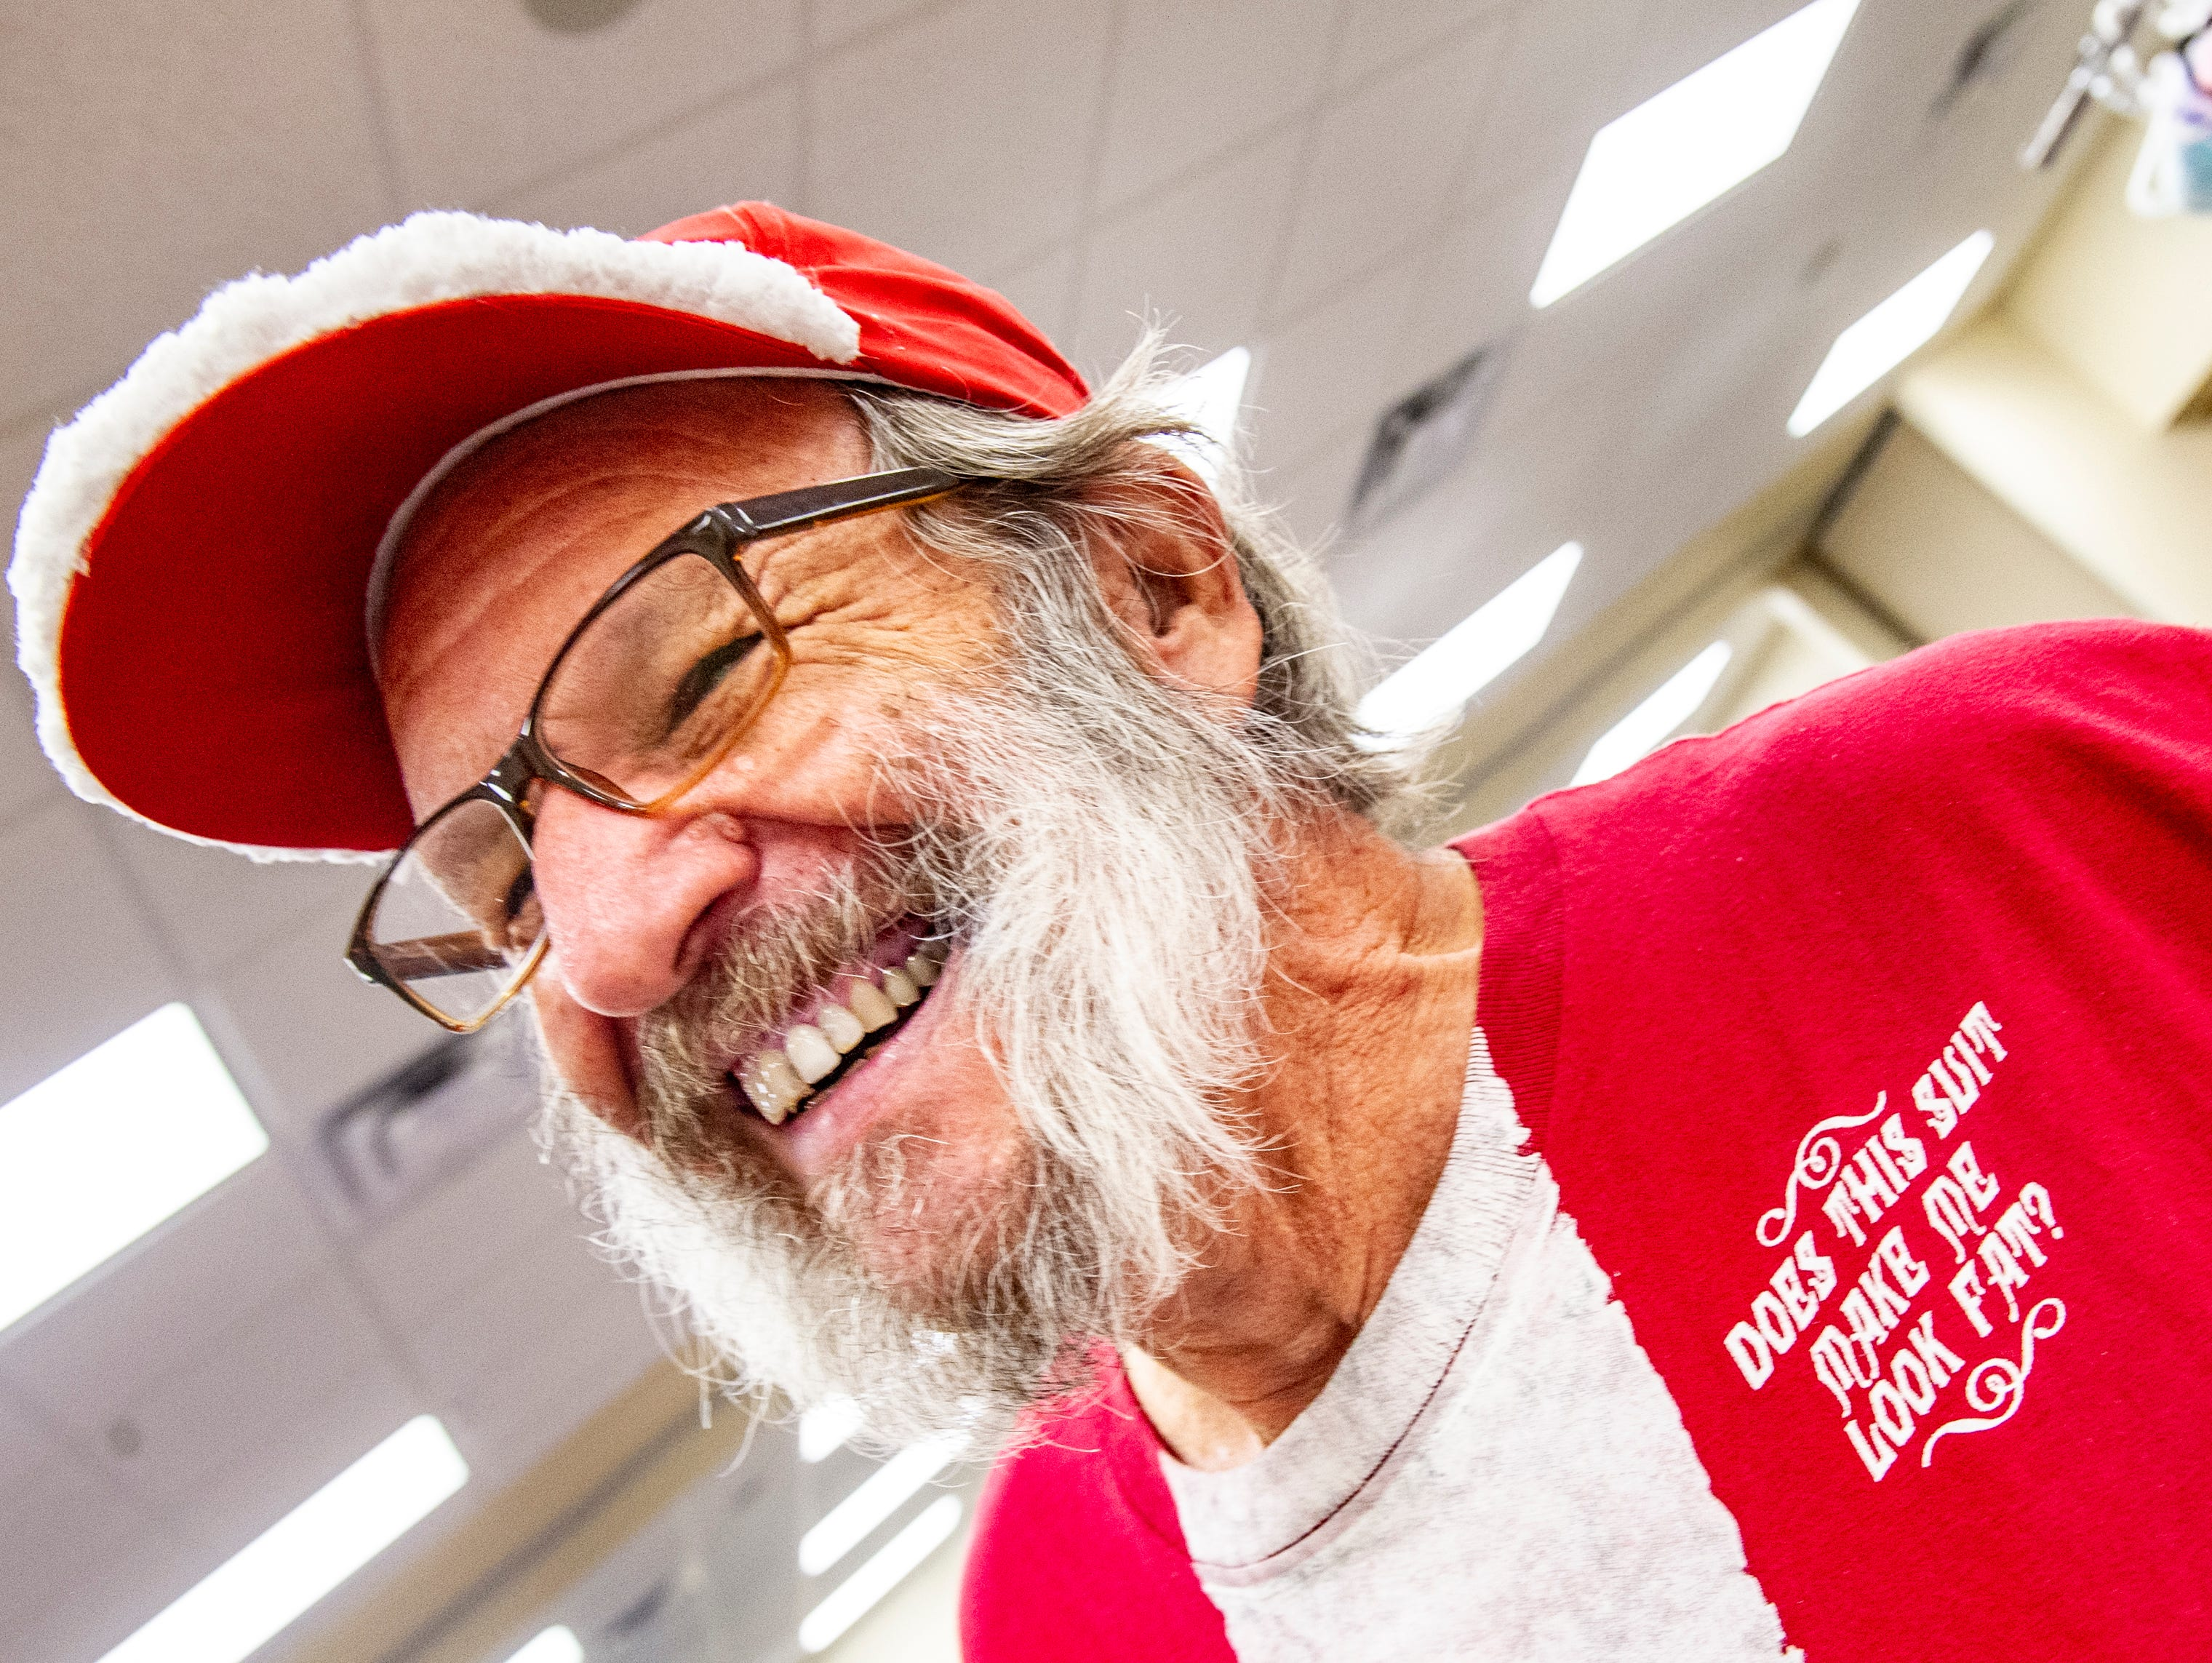 Jerry Ayers, of J and J Crafts, is as pleased with his Santa hat and T-shirt as he was with his craft items he had for sale at at the Rustiqueiowa Homespun Holiday Market held at the Trinity Presbyterian Church in Indianola Nov. 24, 2018.